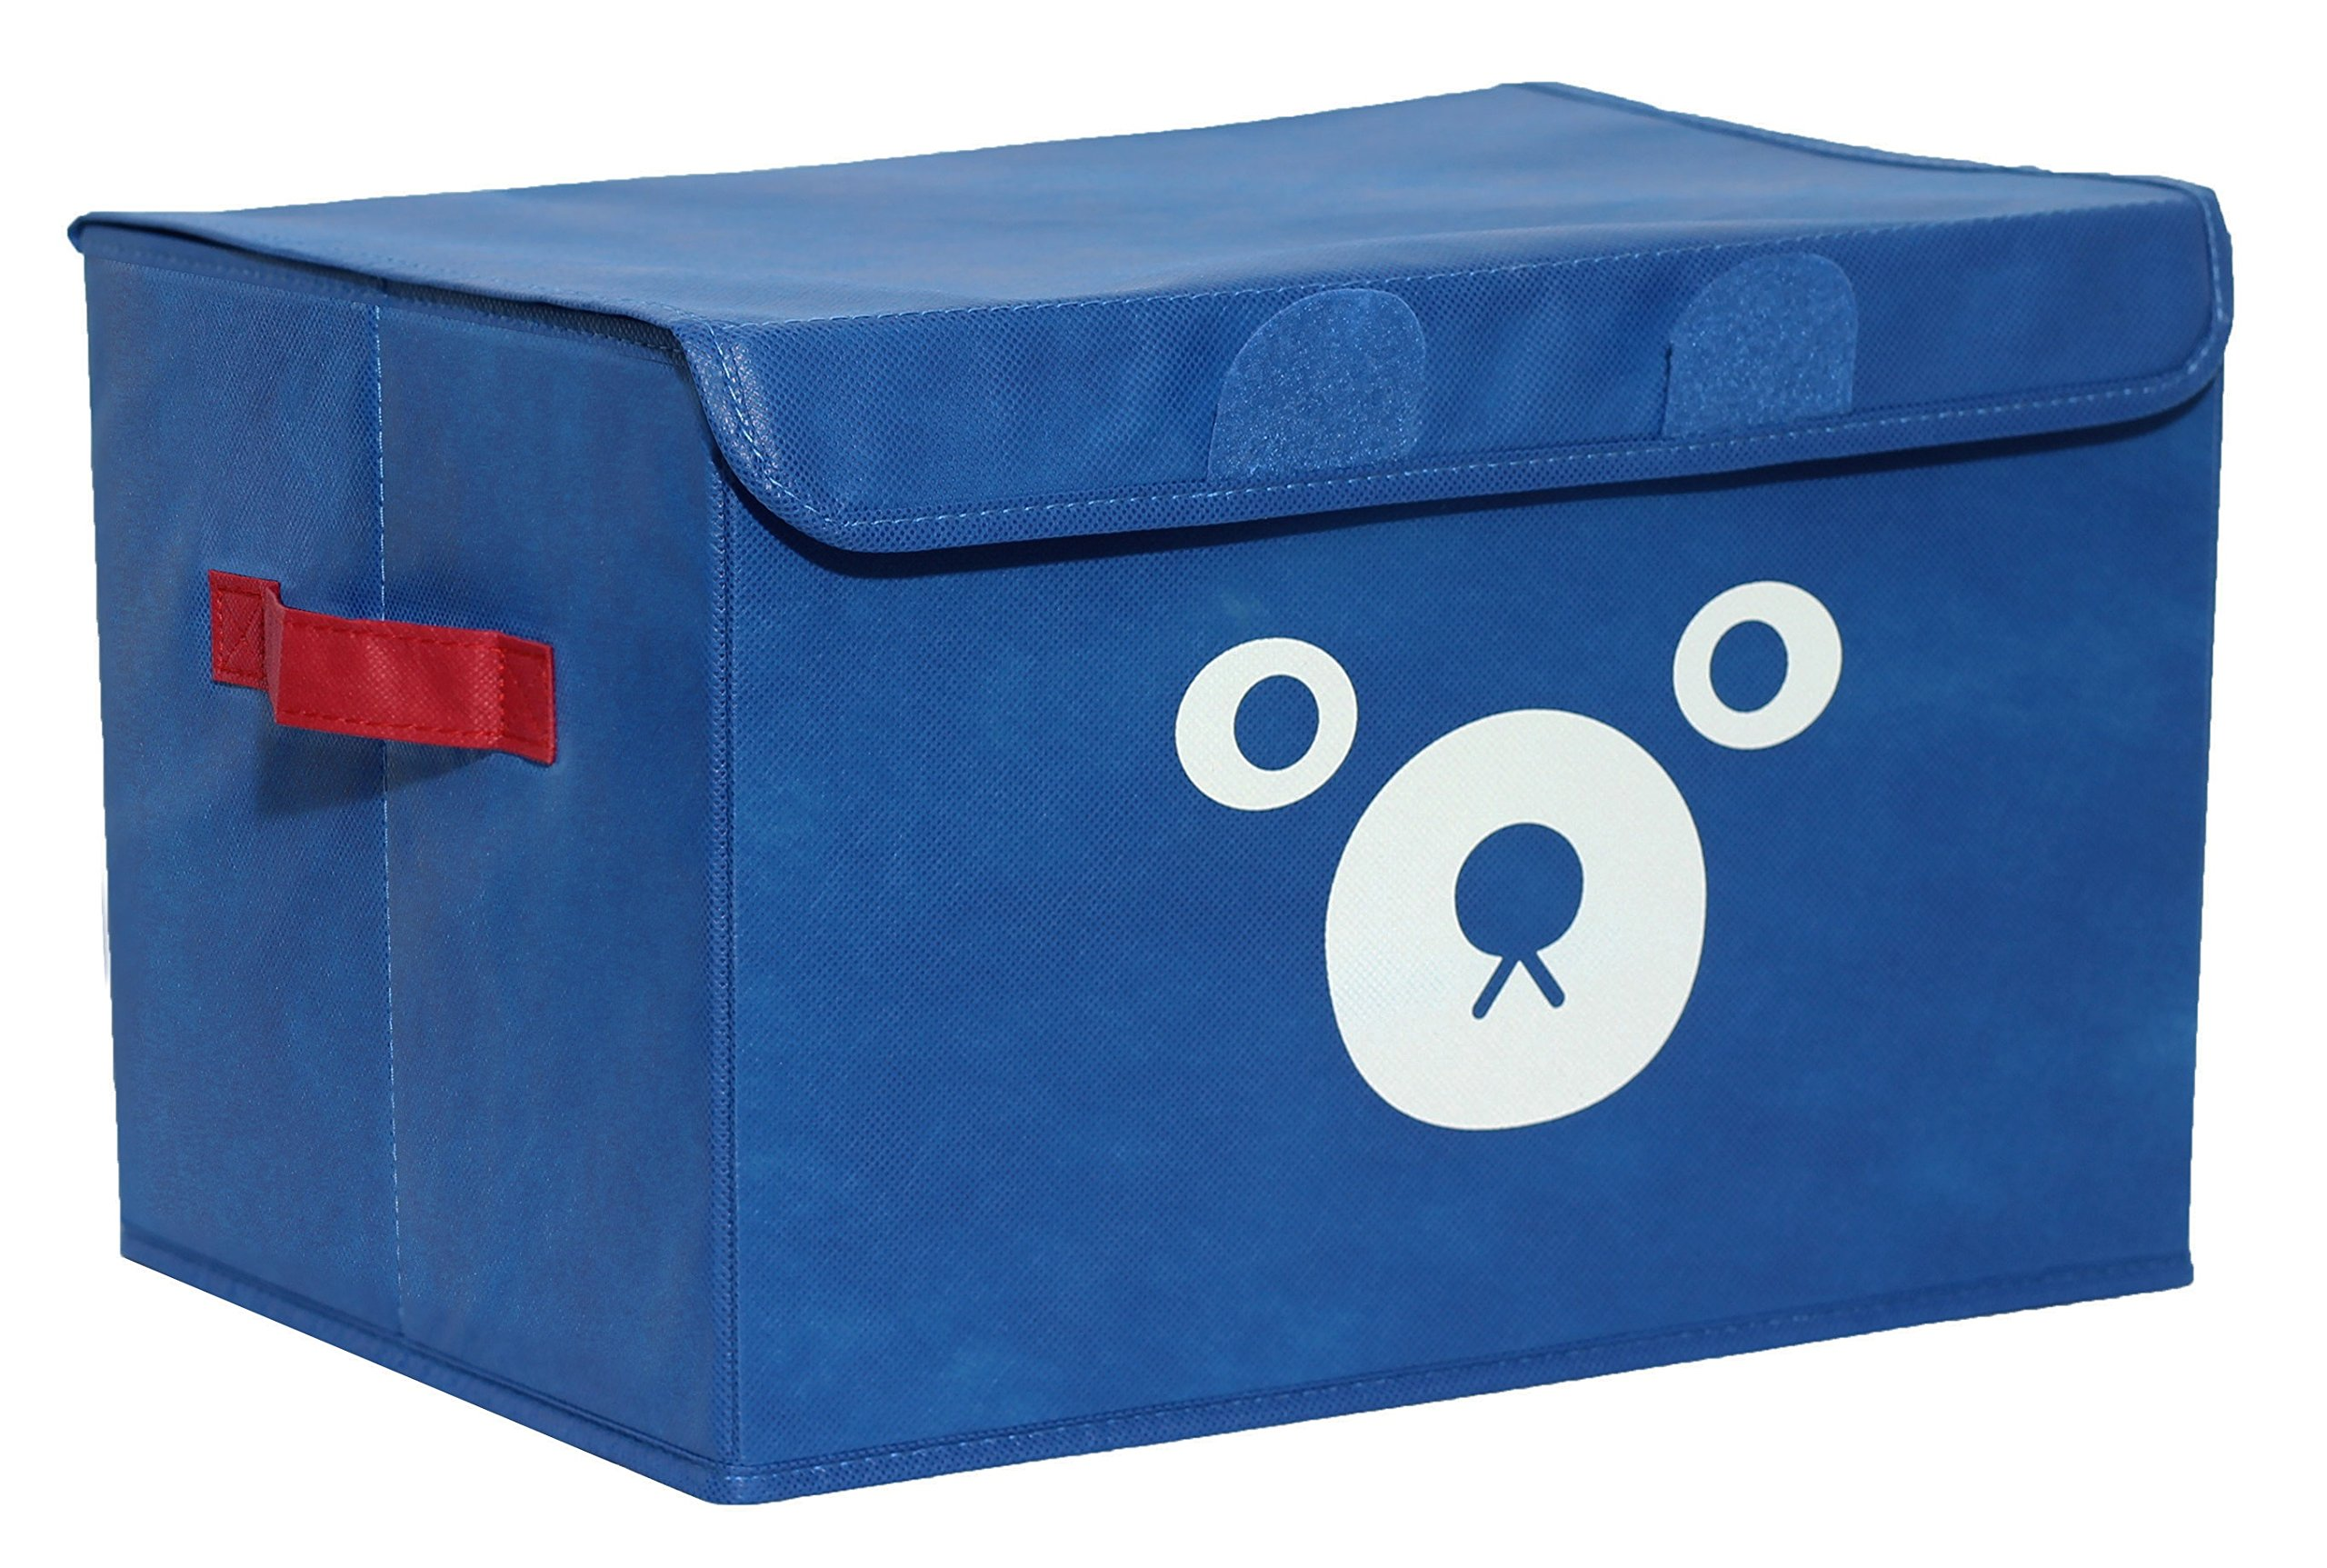 Princess Toys Box Storage Kids Girls Chest Bedroom Clothes: Amazon.com : Katabird Storage Bin For Toy Storage